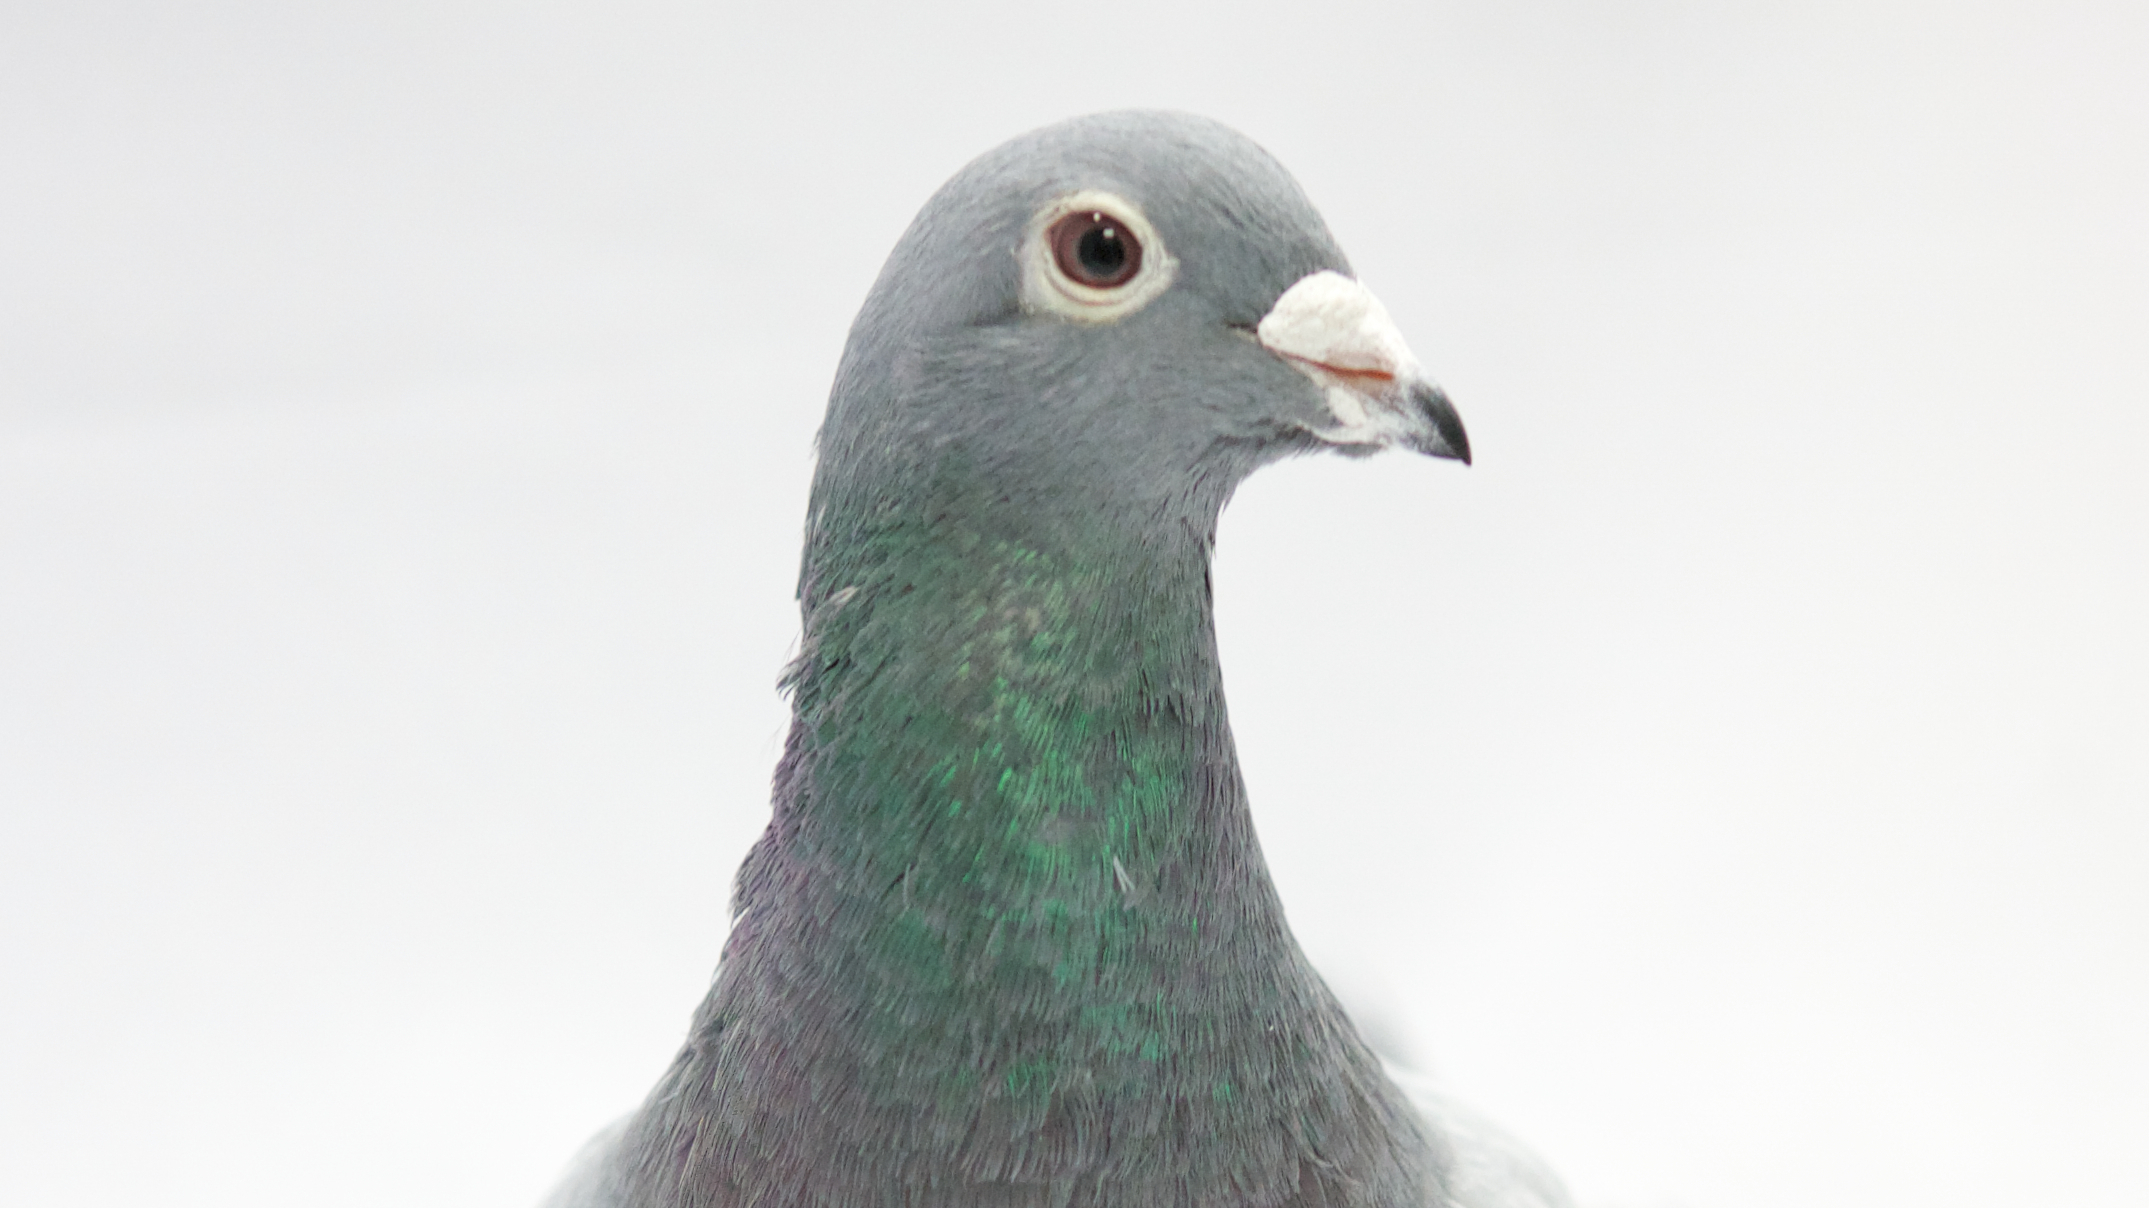 Can Pigeons Spell?